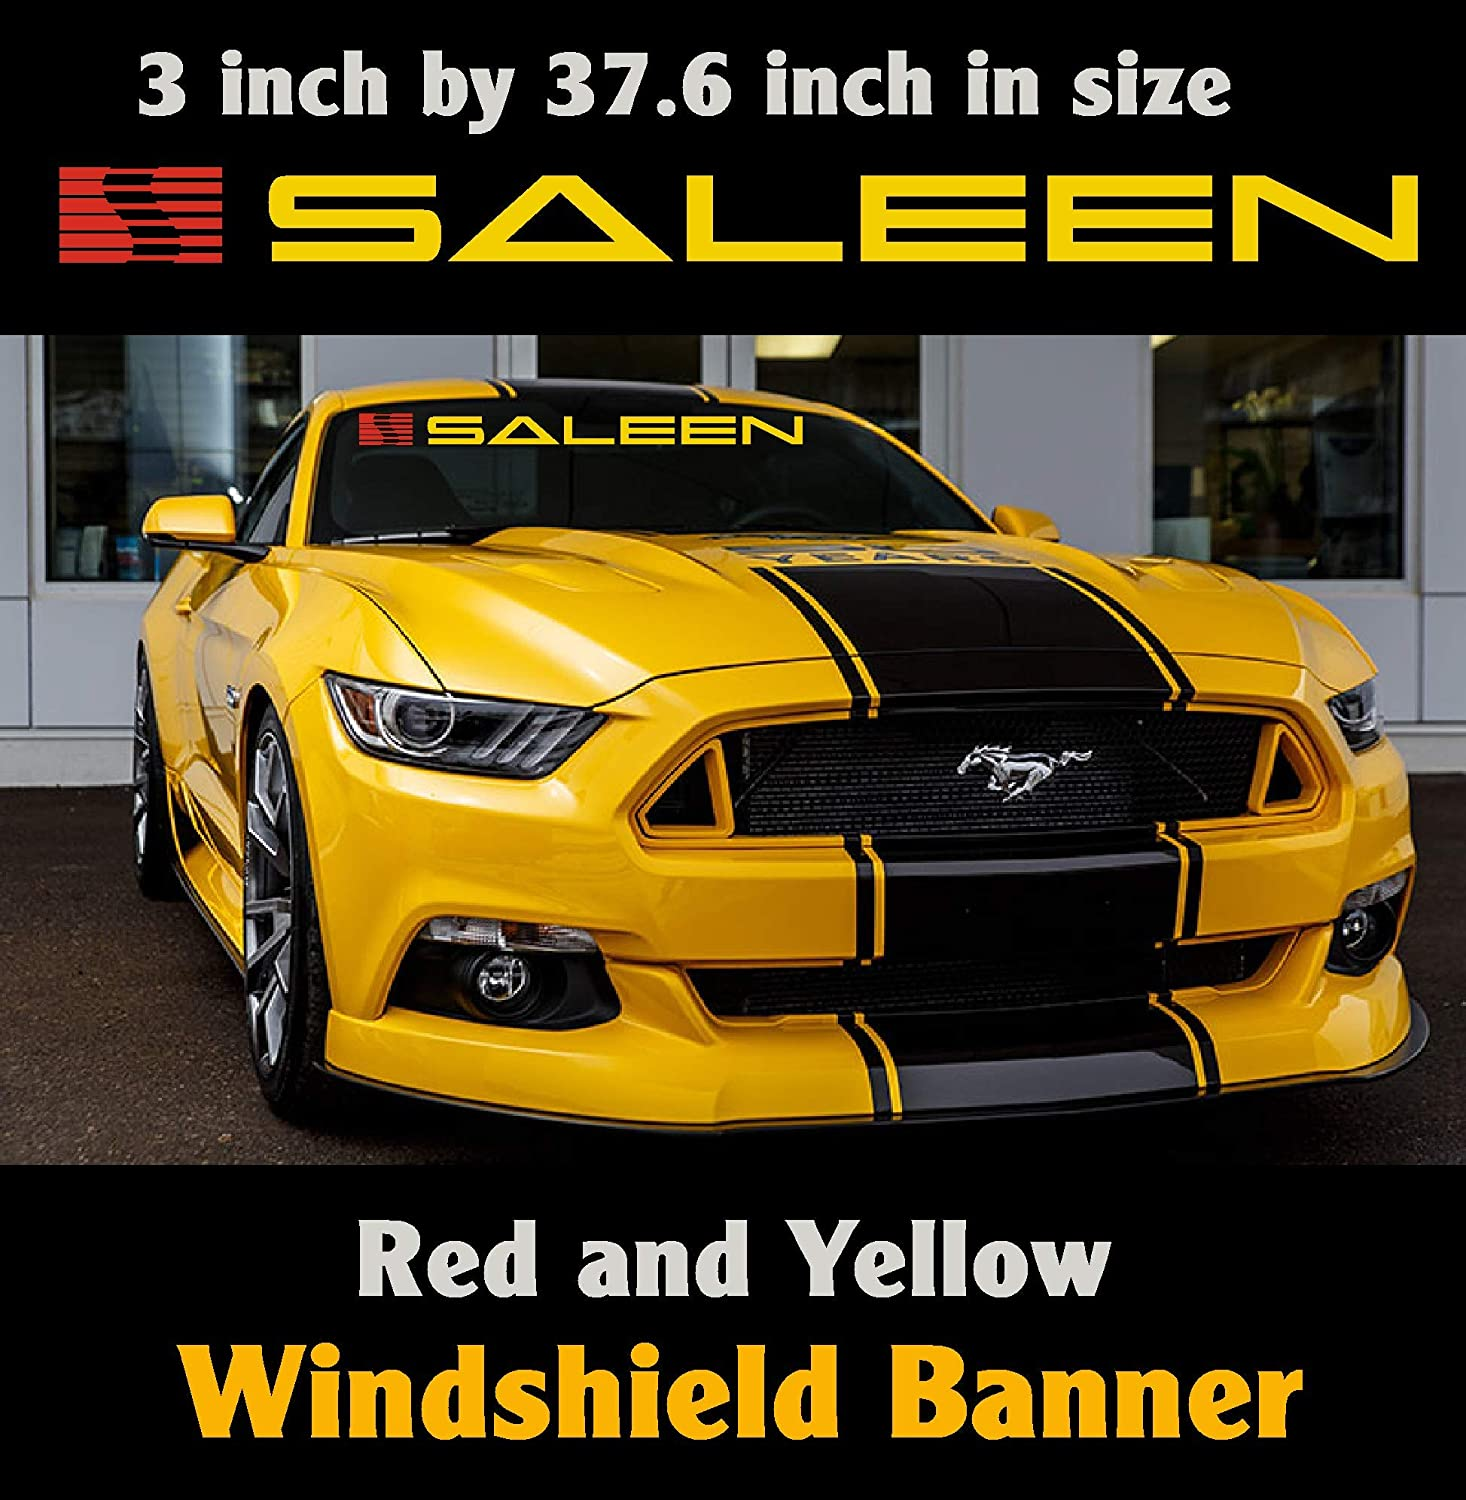 Ford Saleen Mustang Windshield Banner Yellow and Red 3 inch by 37.6 inch Sticker Decal Boss Emblem Mustang GT.